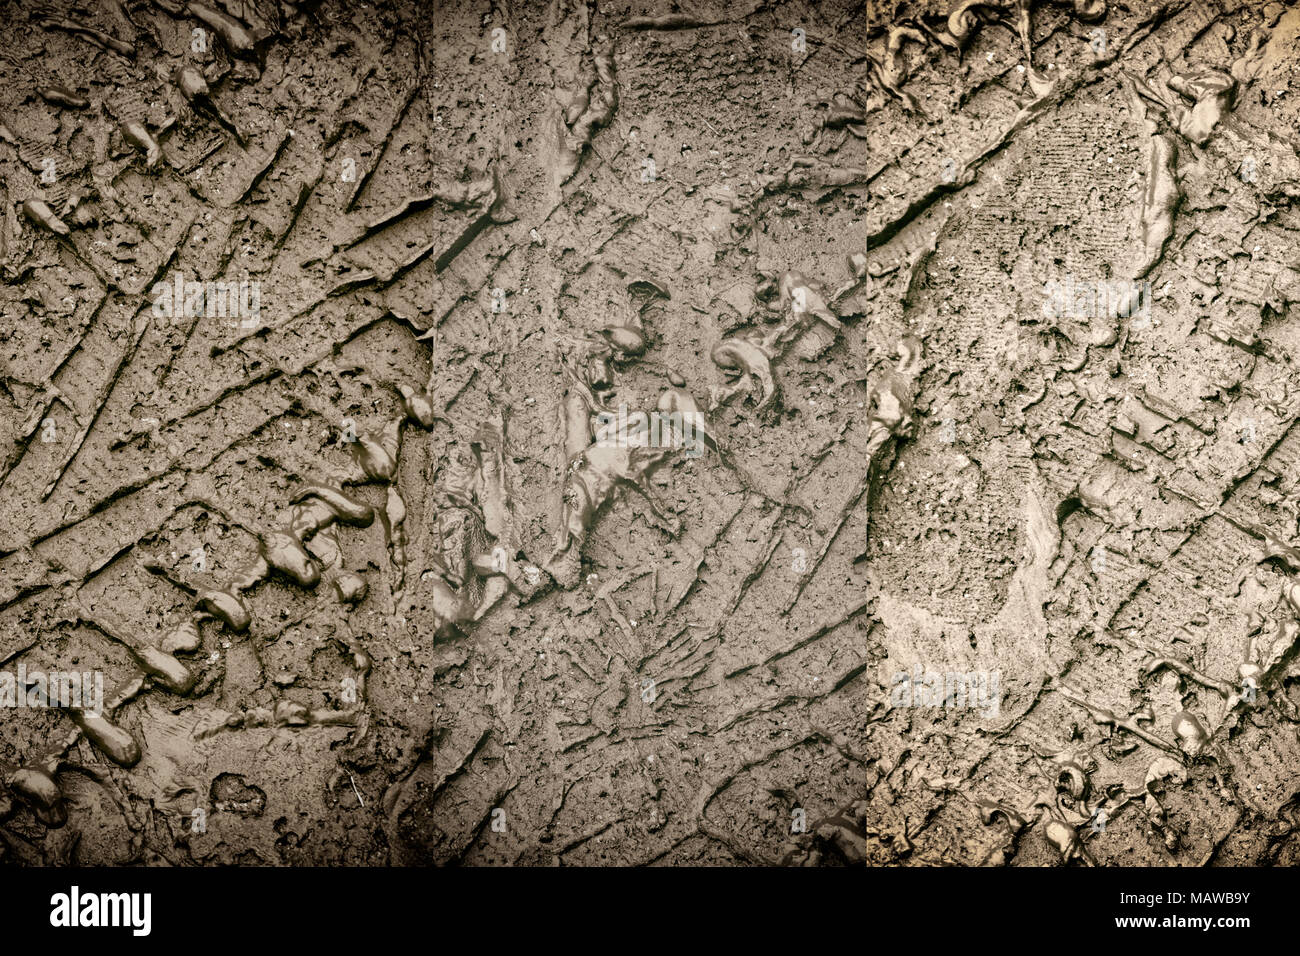 Mud texture or wet soil as natural organic clay and geological sediment mixture as in roughing it in a dirty muddy country road bog after the rain or  - Stock Image